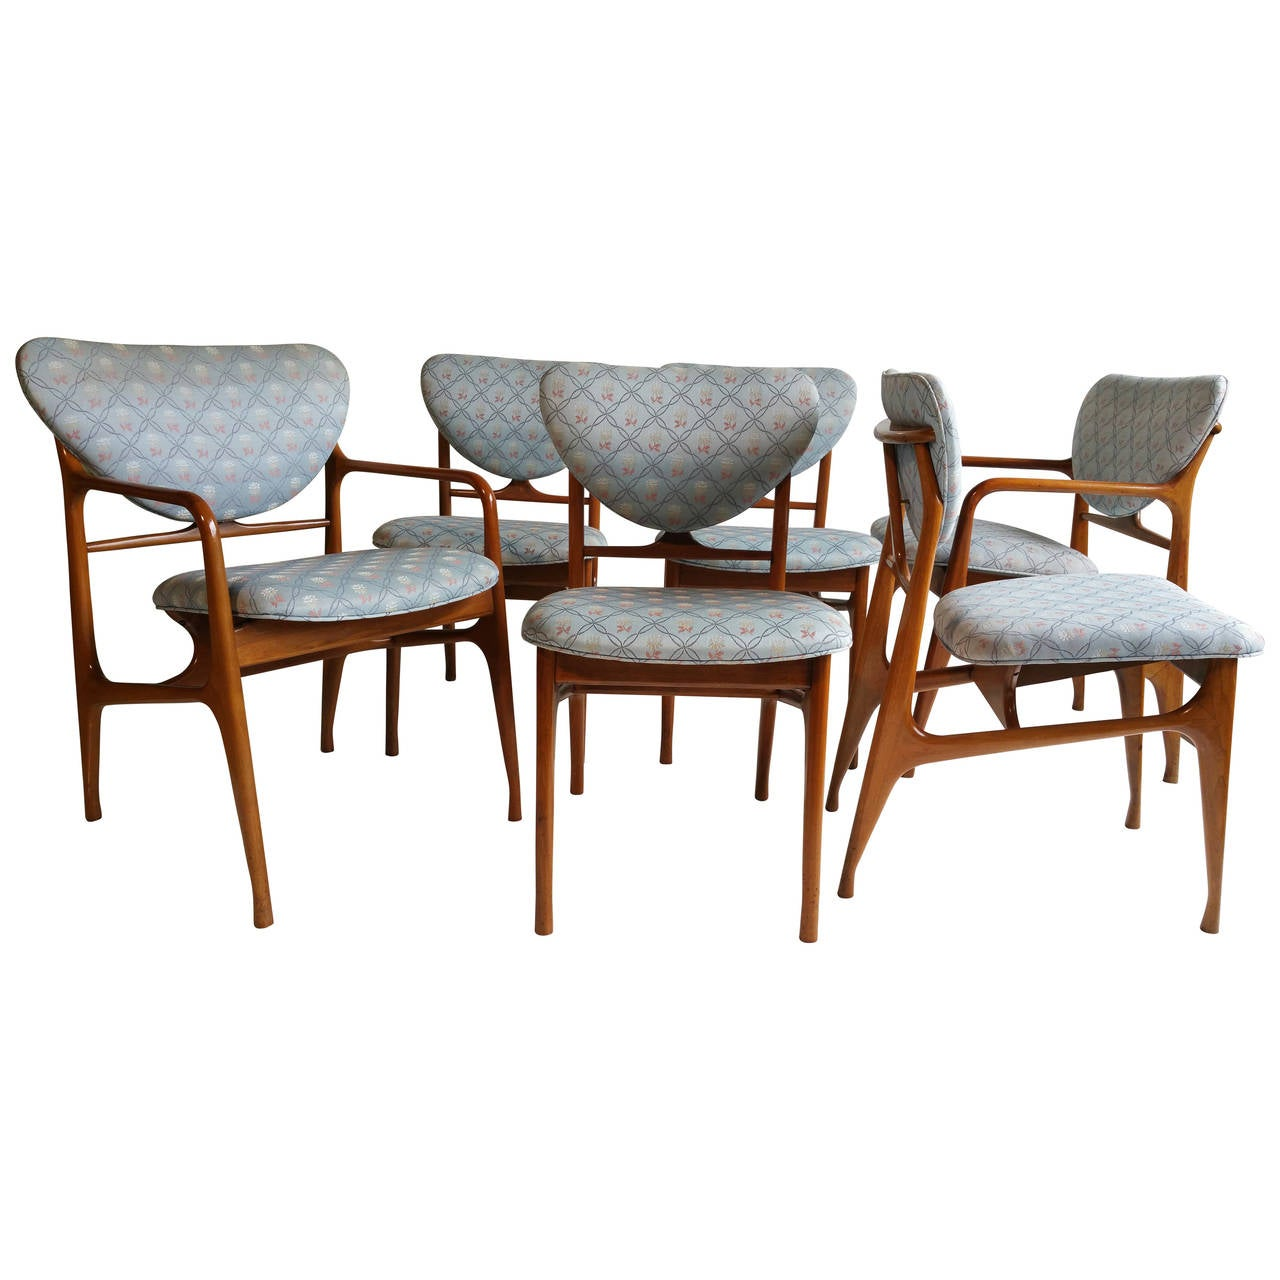 set of six mid century modern sculptural dining chairs vladimir kagan